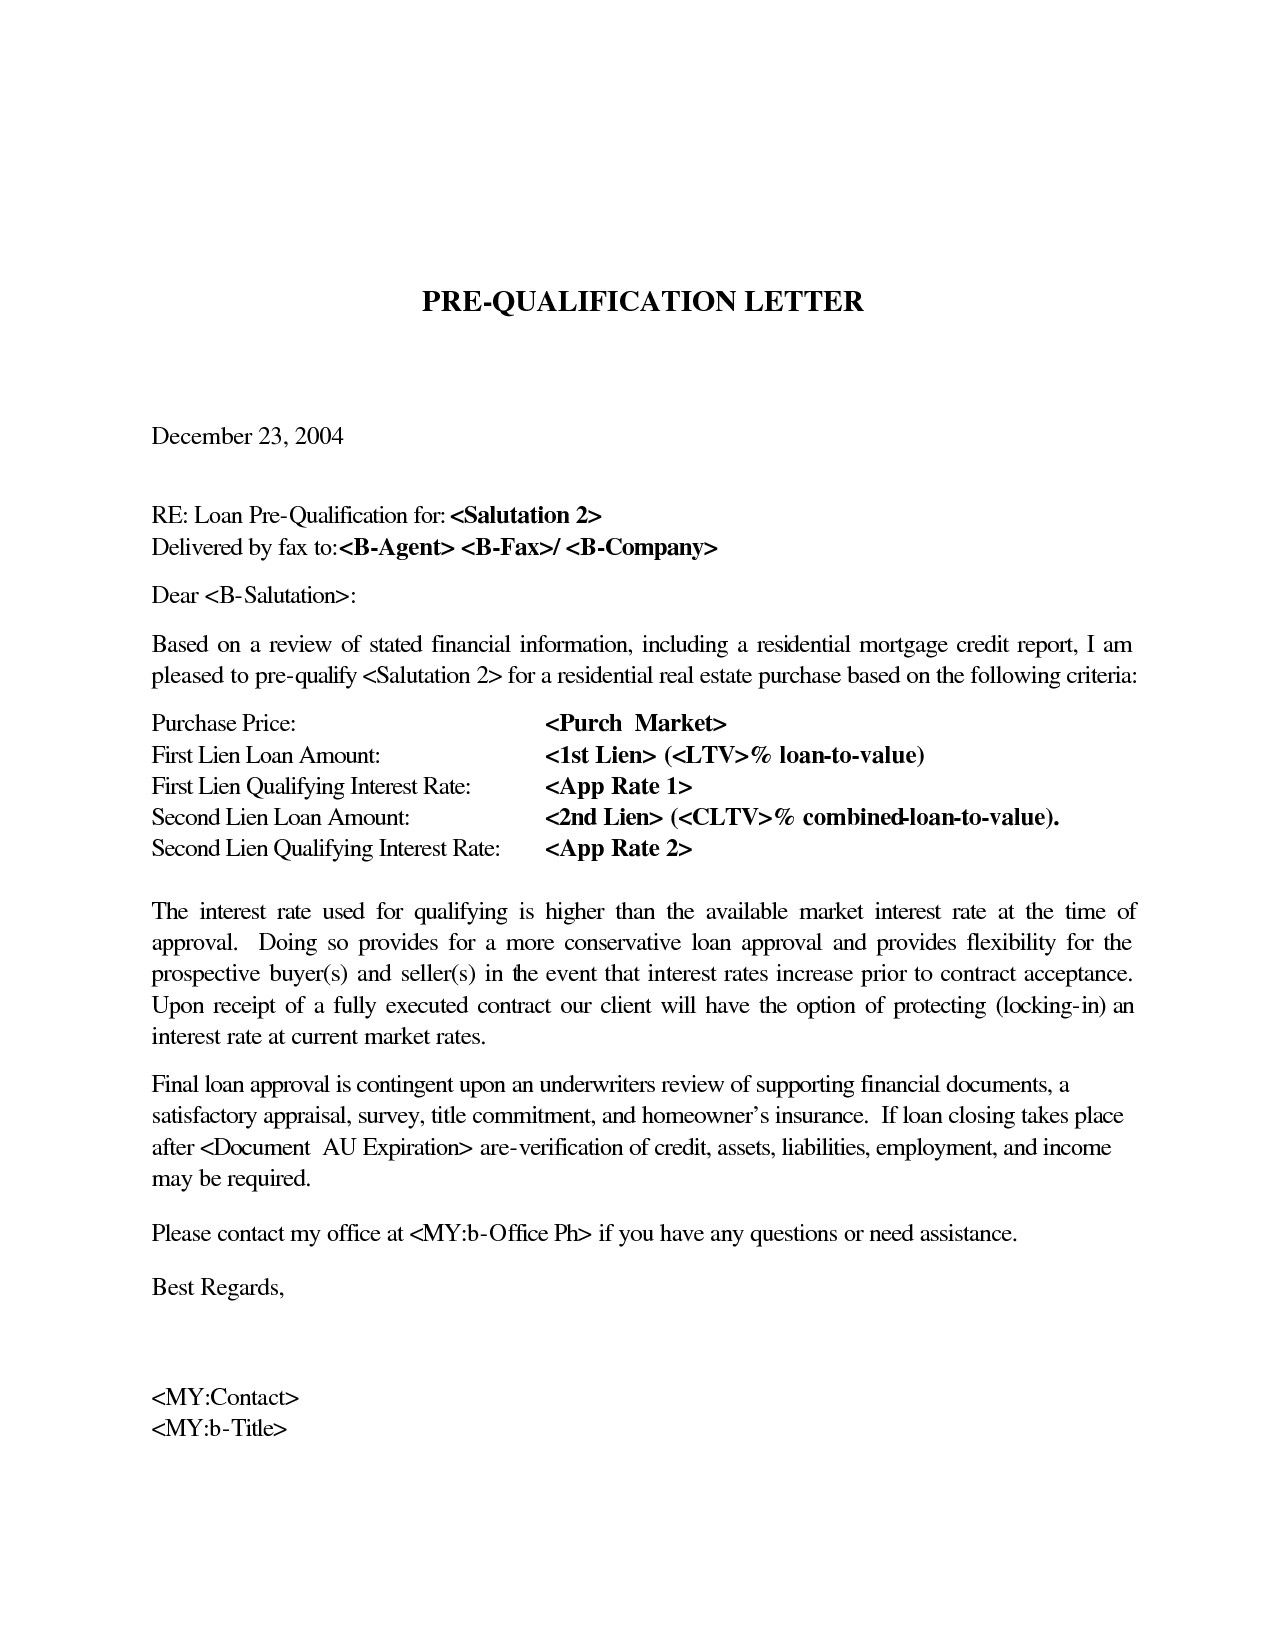 Mortgage Pre Qualification Letter Template - Pre Approval Letter Sample New Dental assistant Qualifications